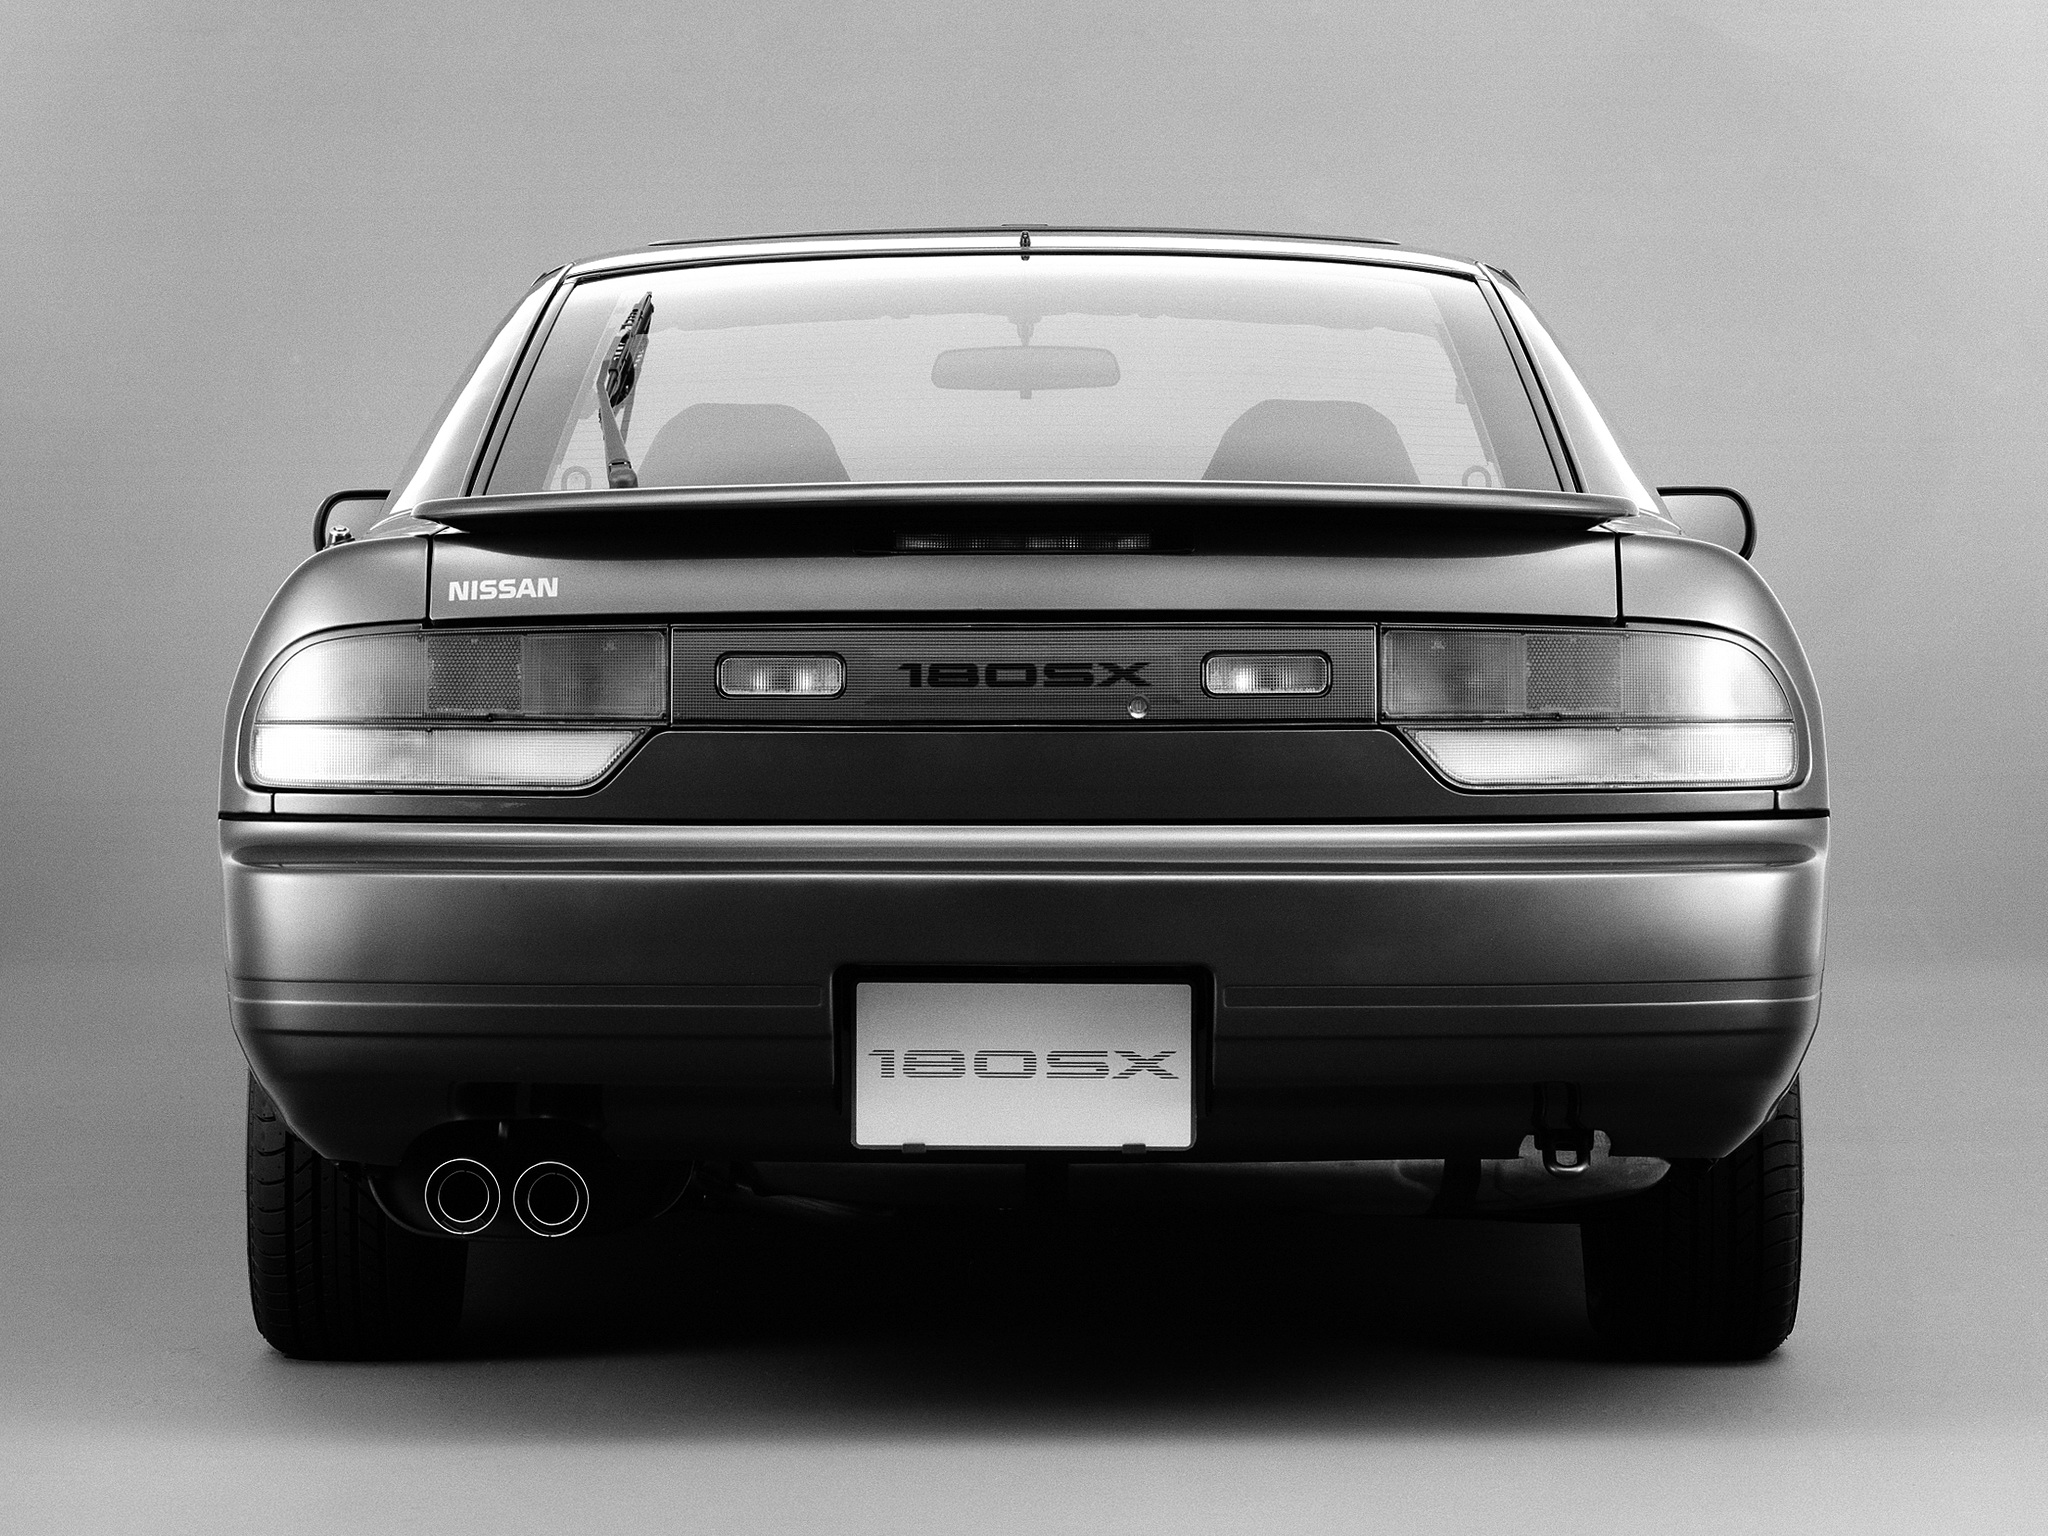 Nissan 180SX picture # 81047 | Nissan photo gallery | CarsBase.